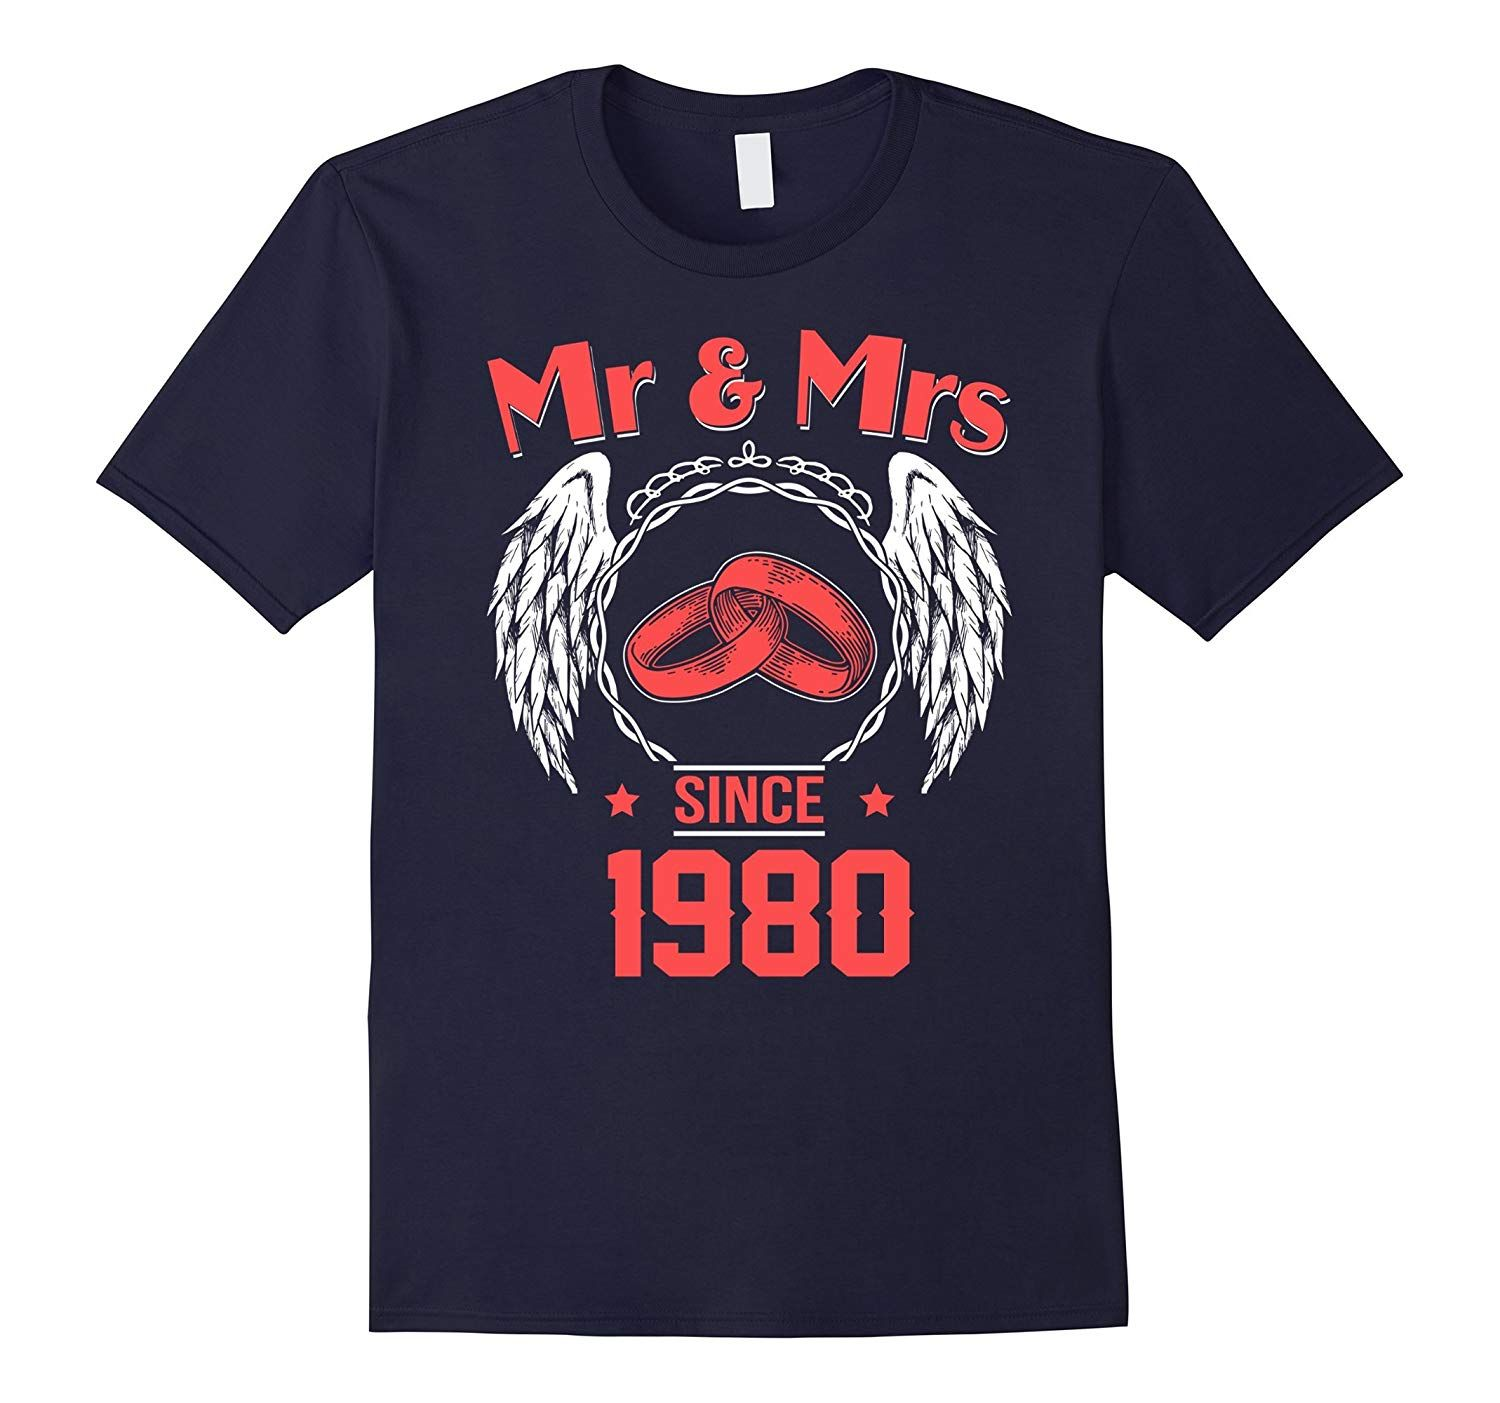 37th wedding anniversary gifts t shirts for husband for